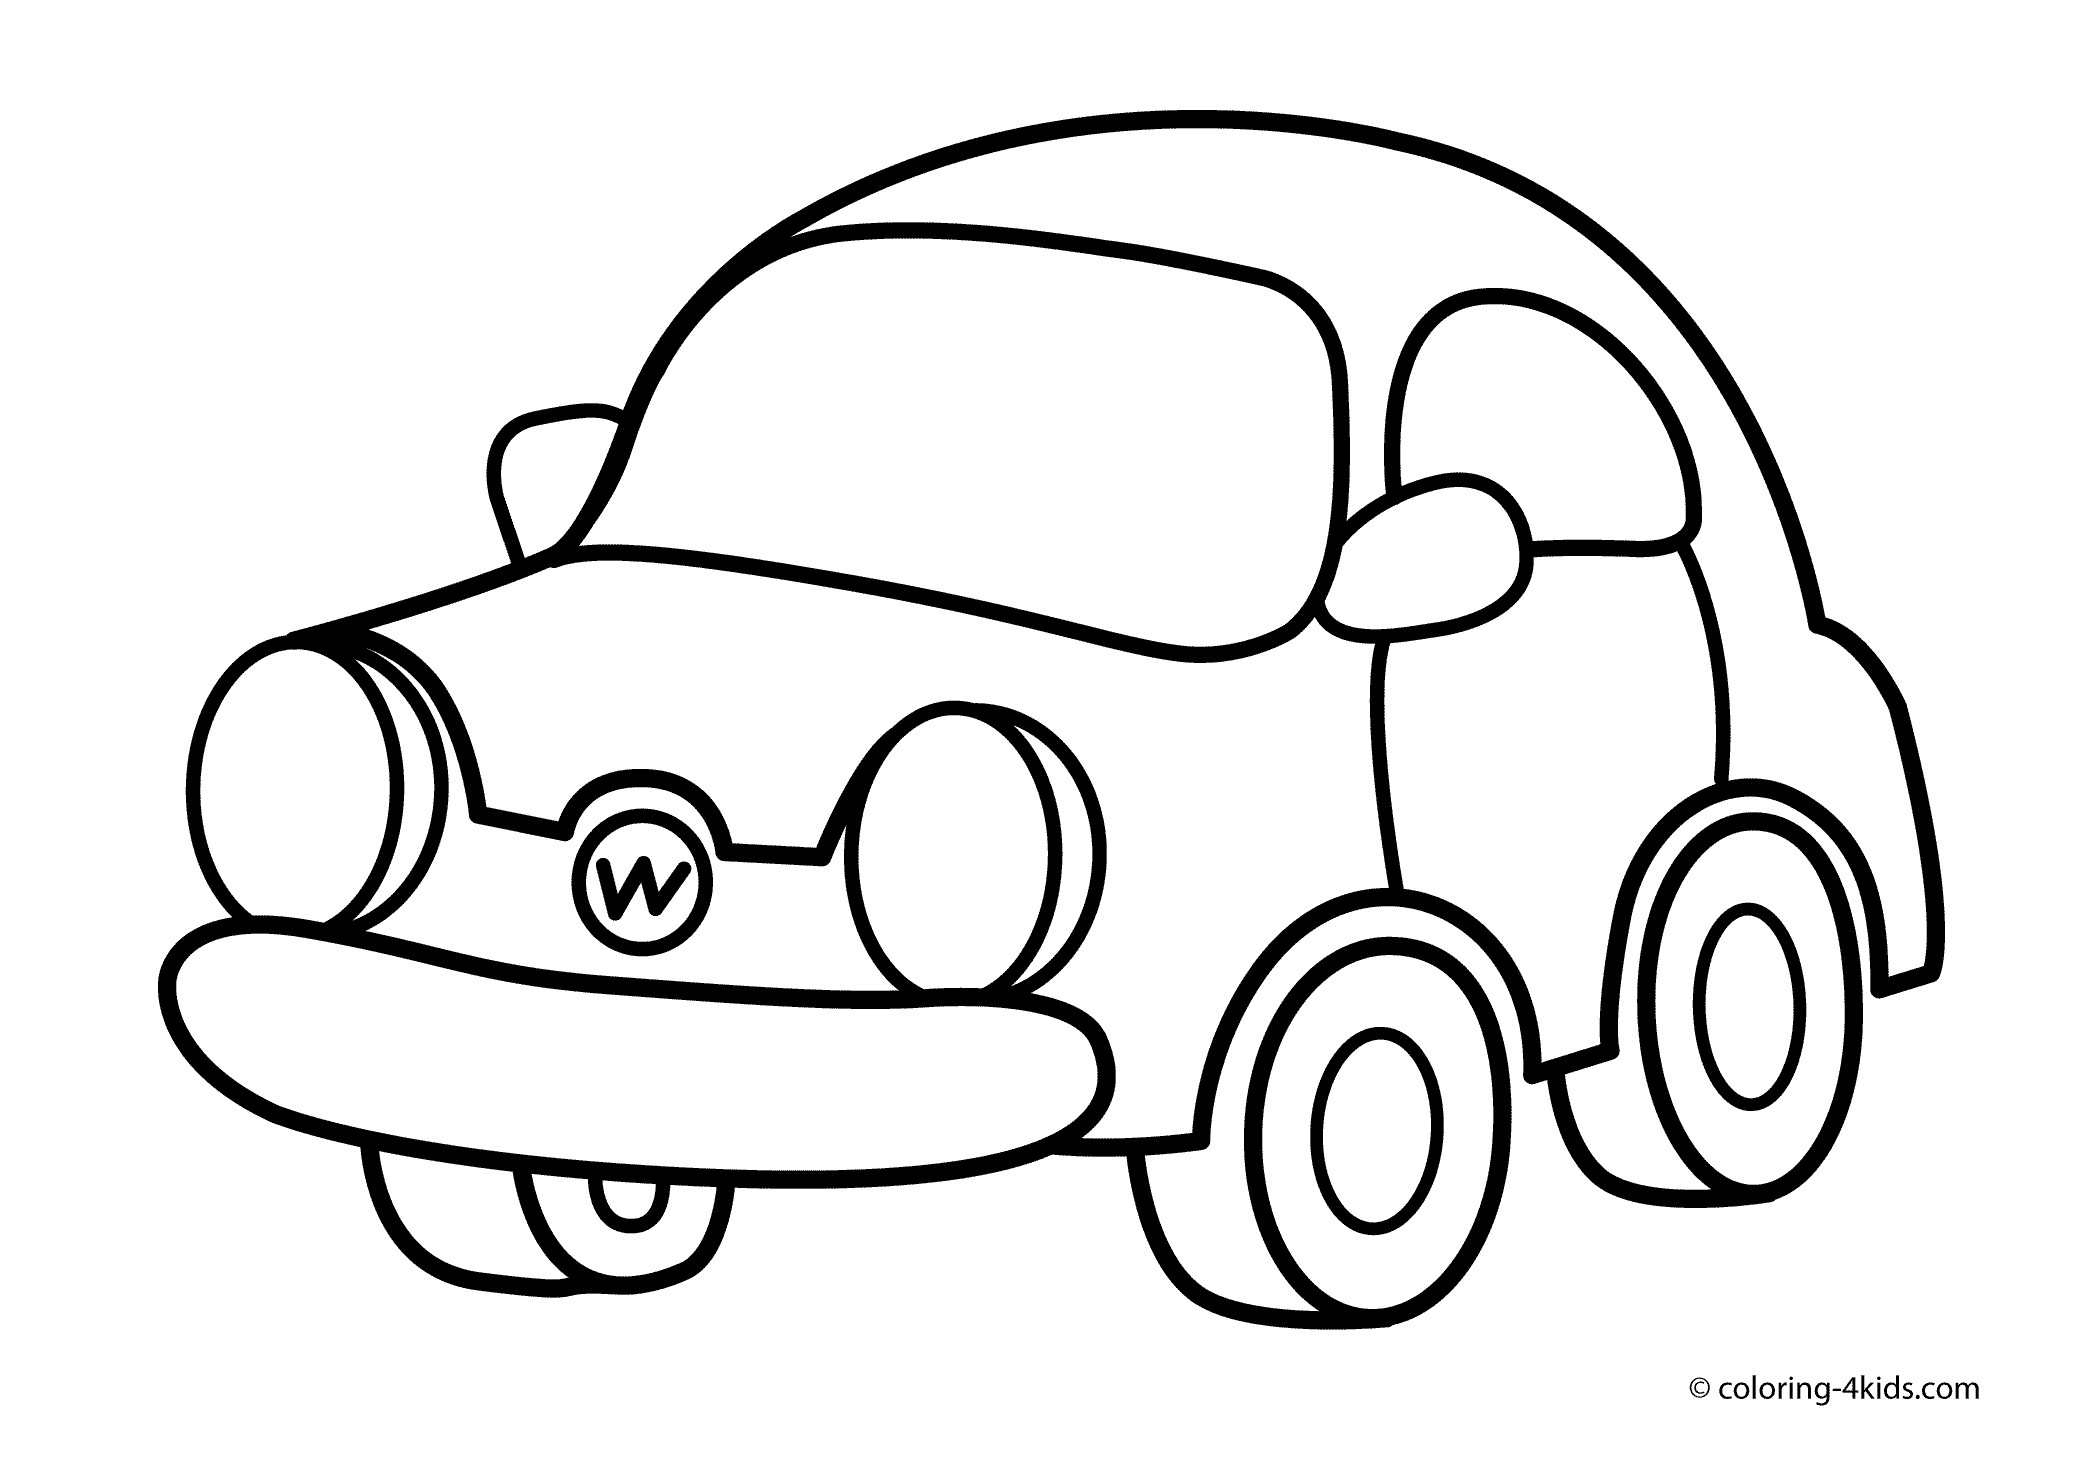 2079x1483 Drawing Coloring Car Cartoon For Free Coloring Pages